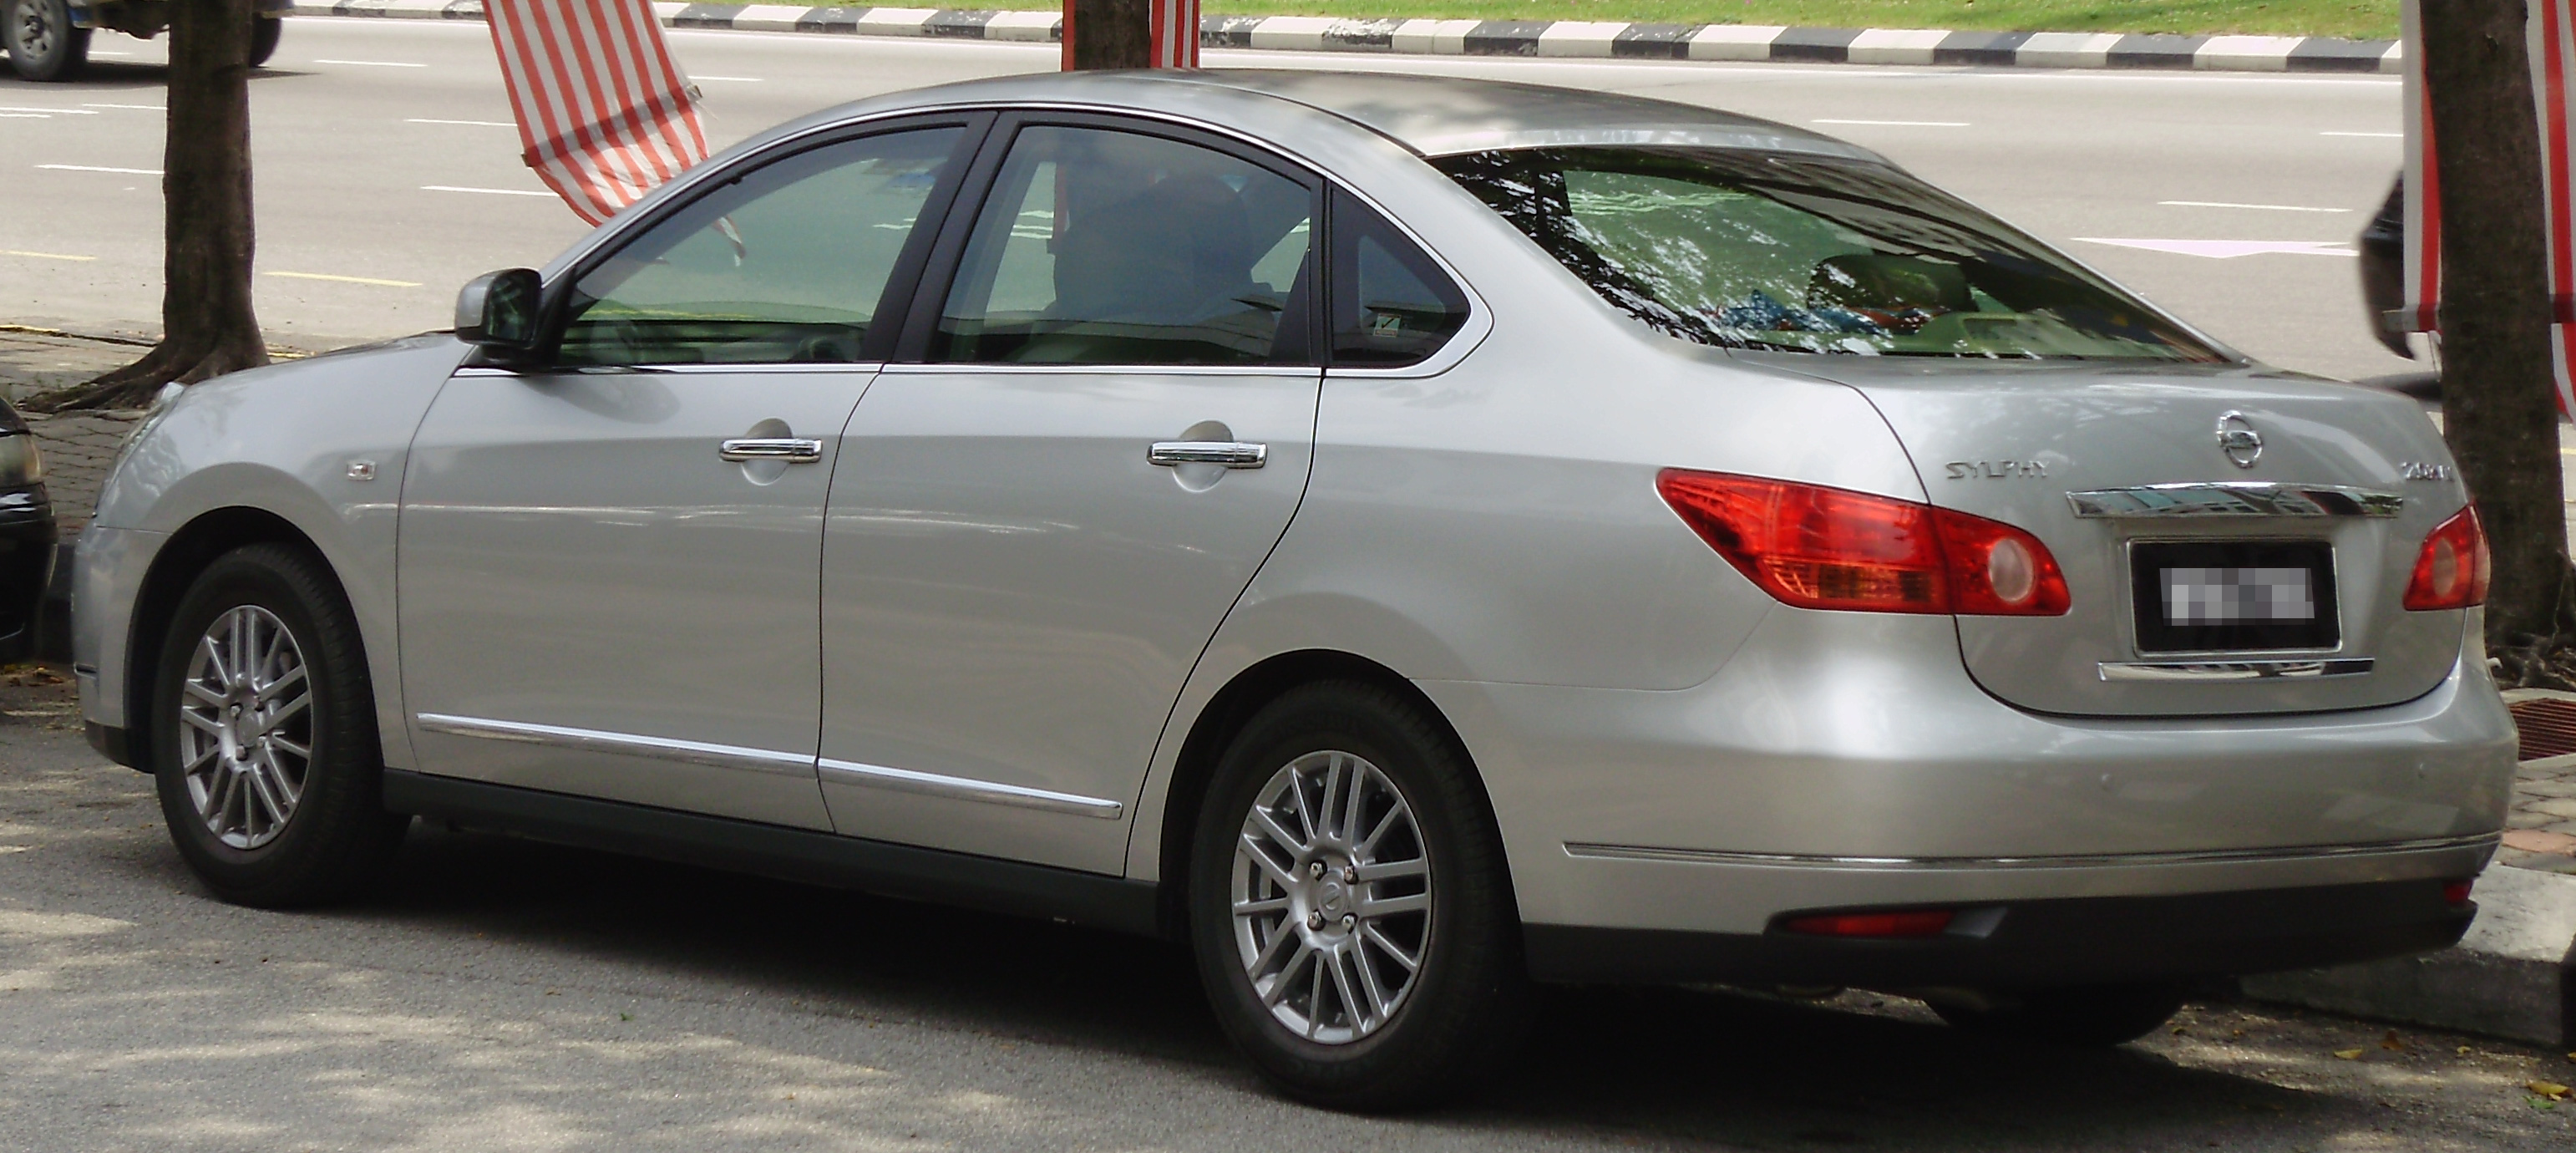 File Nissan Sylphy Second Generation Rear Kuala